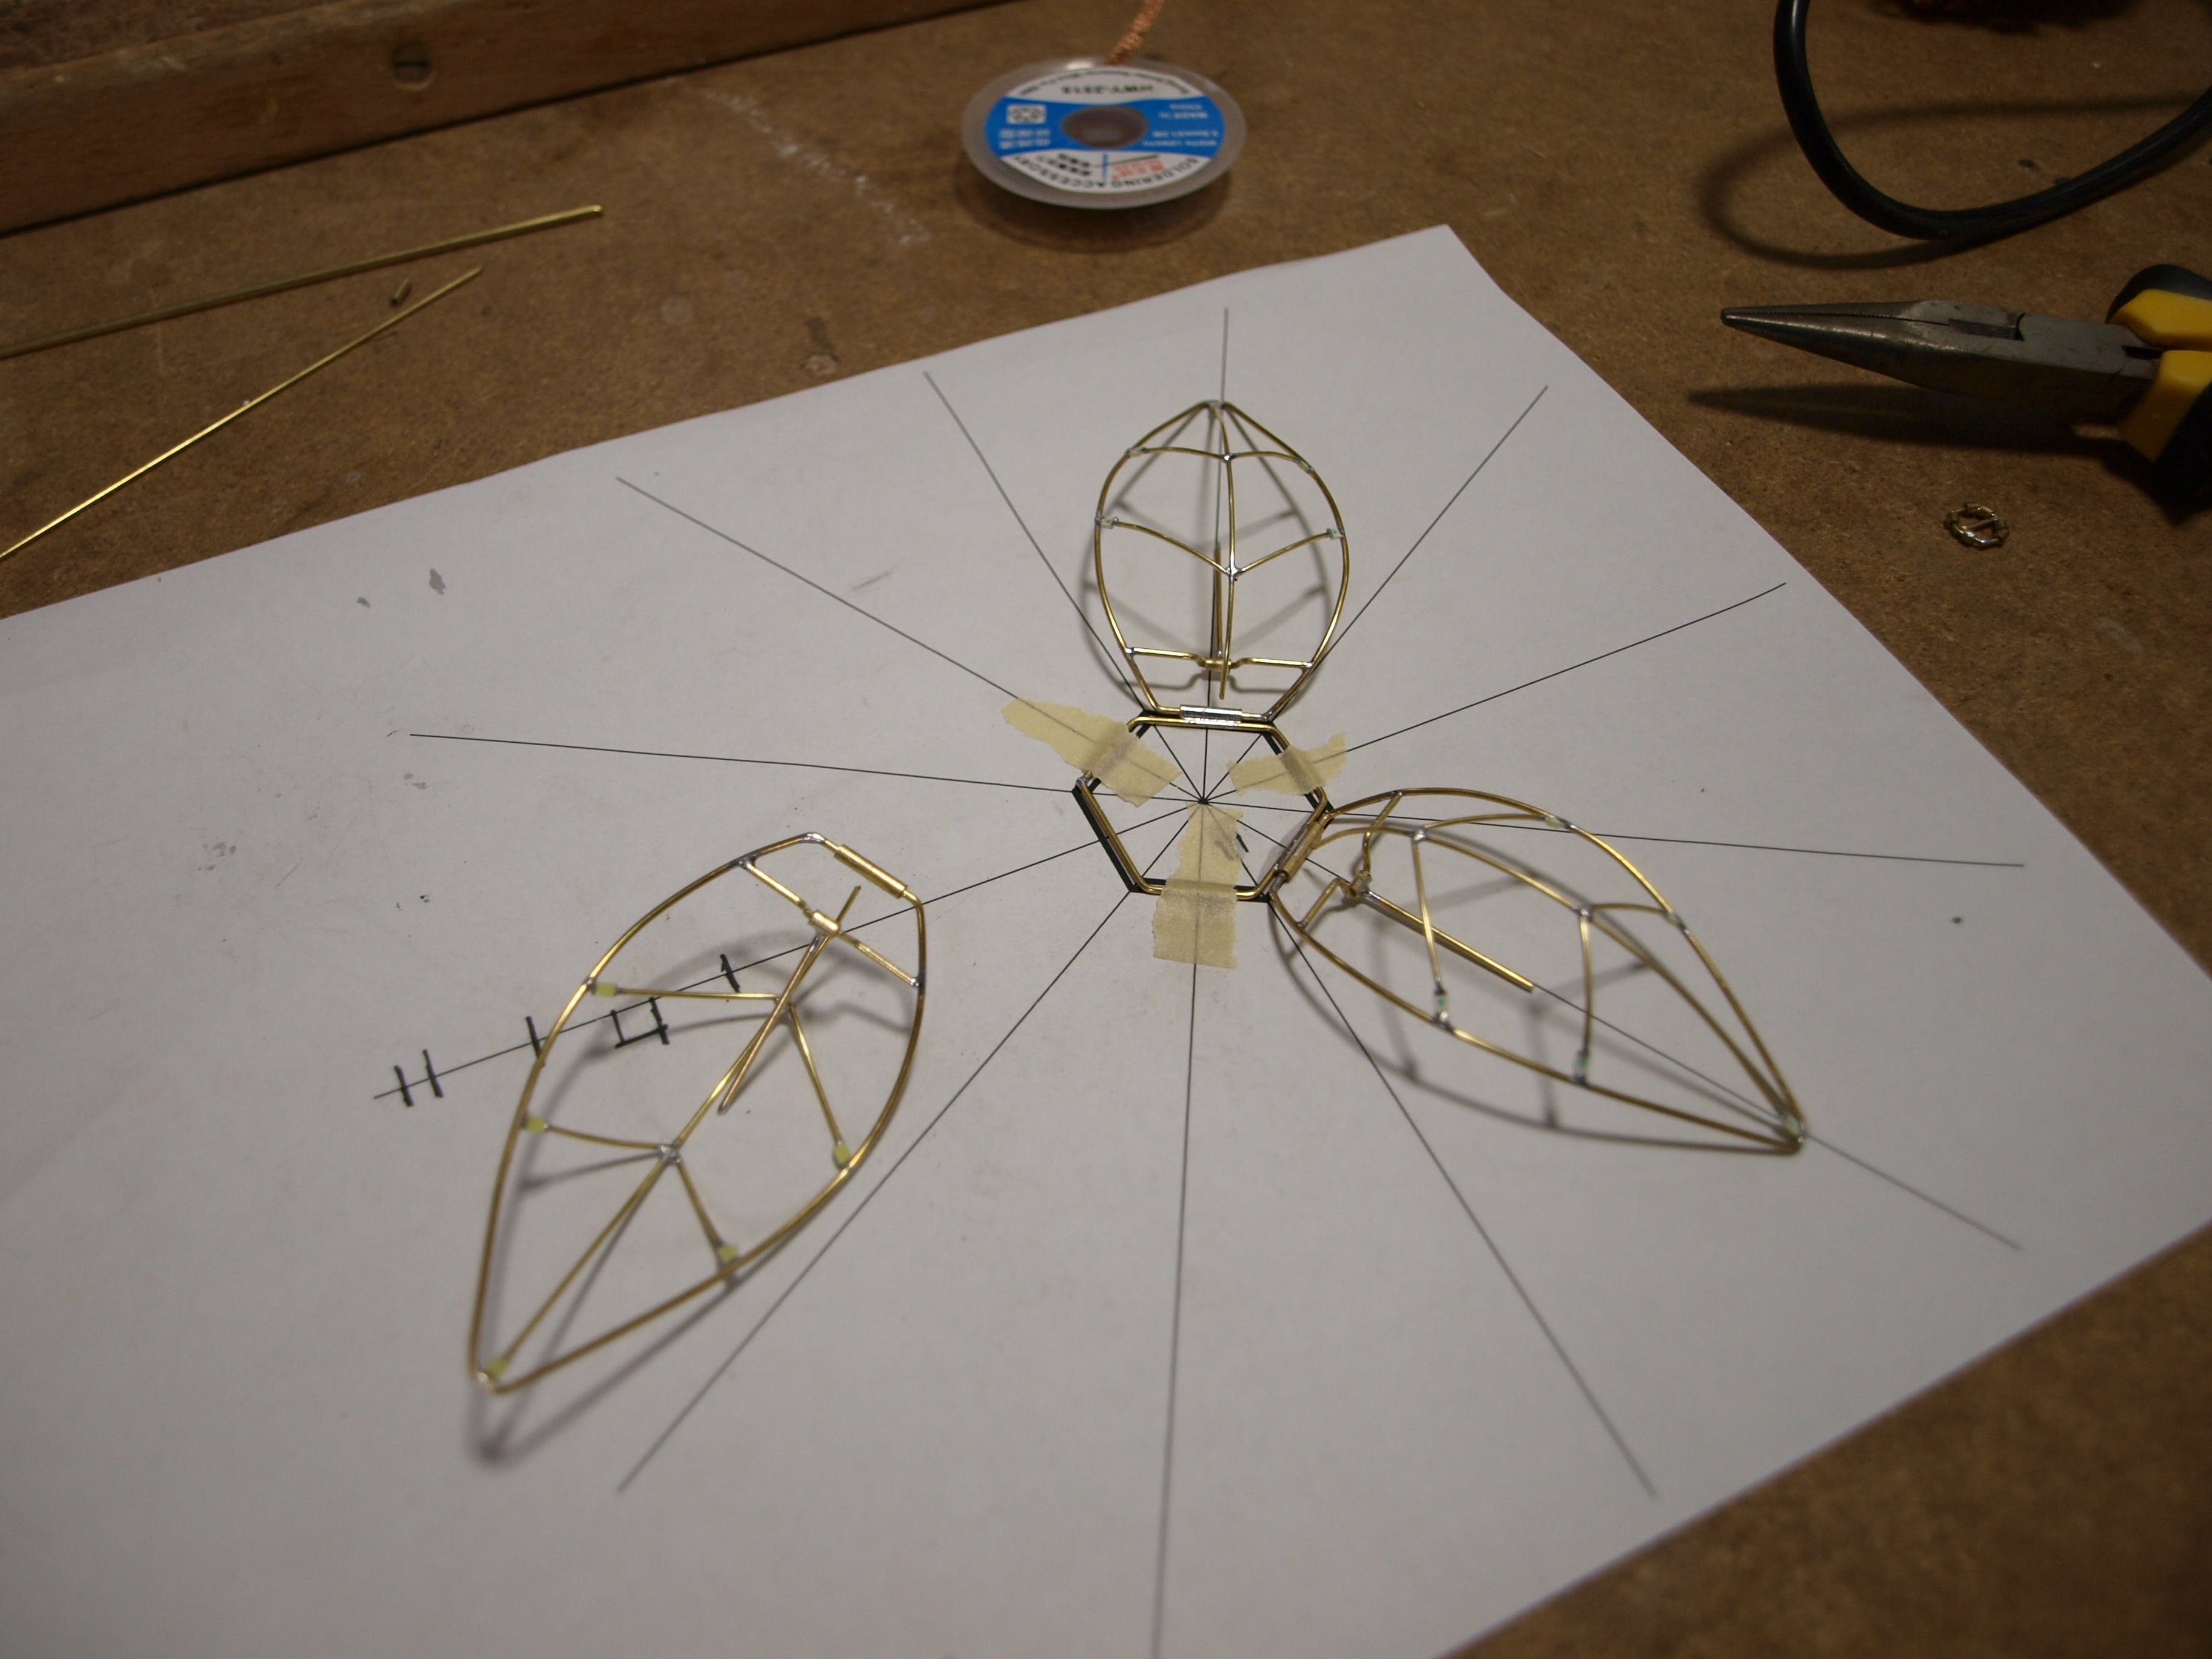 Using template to solder the petals